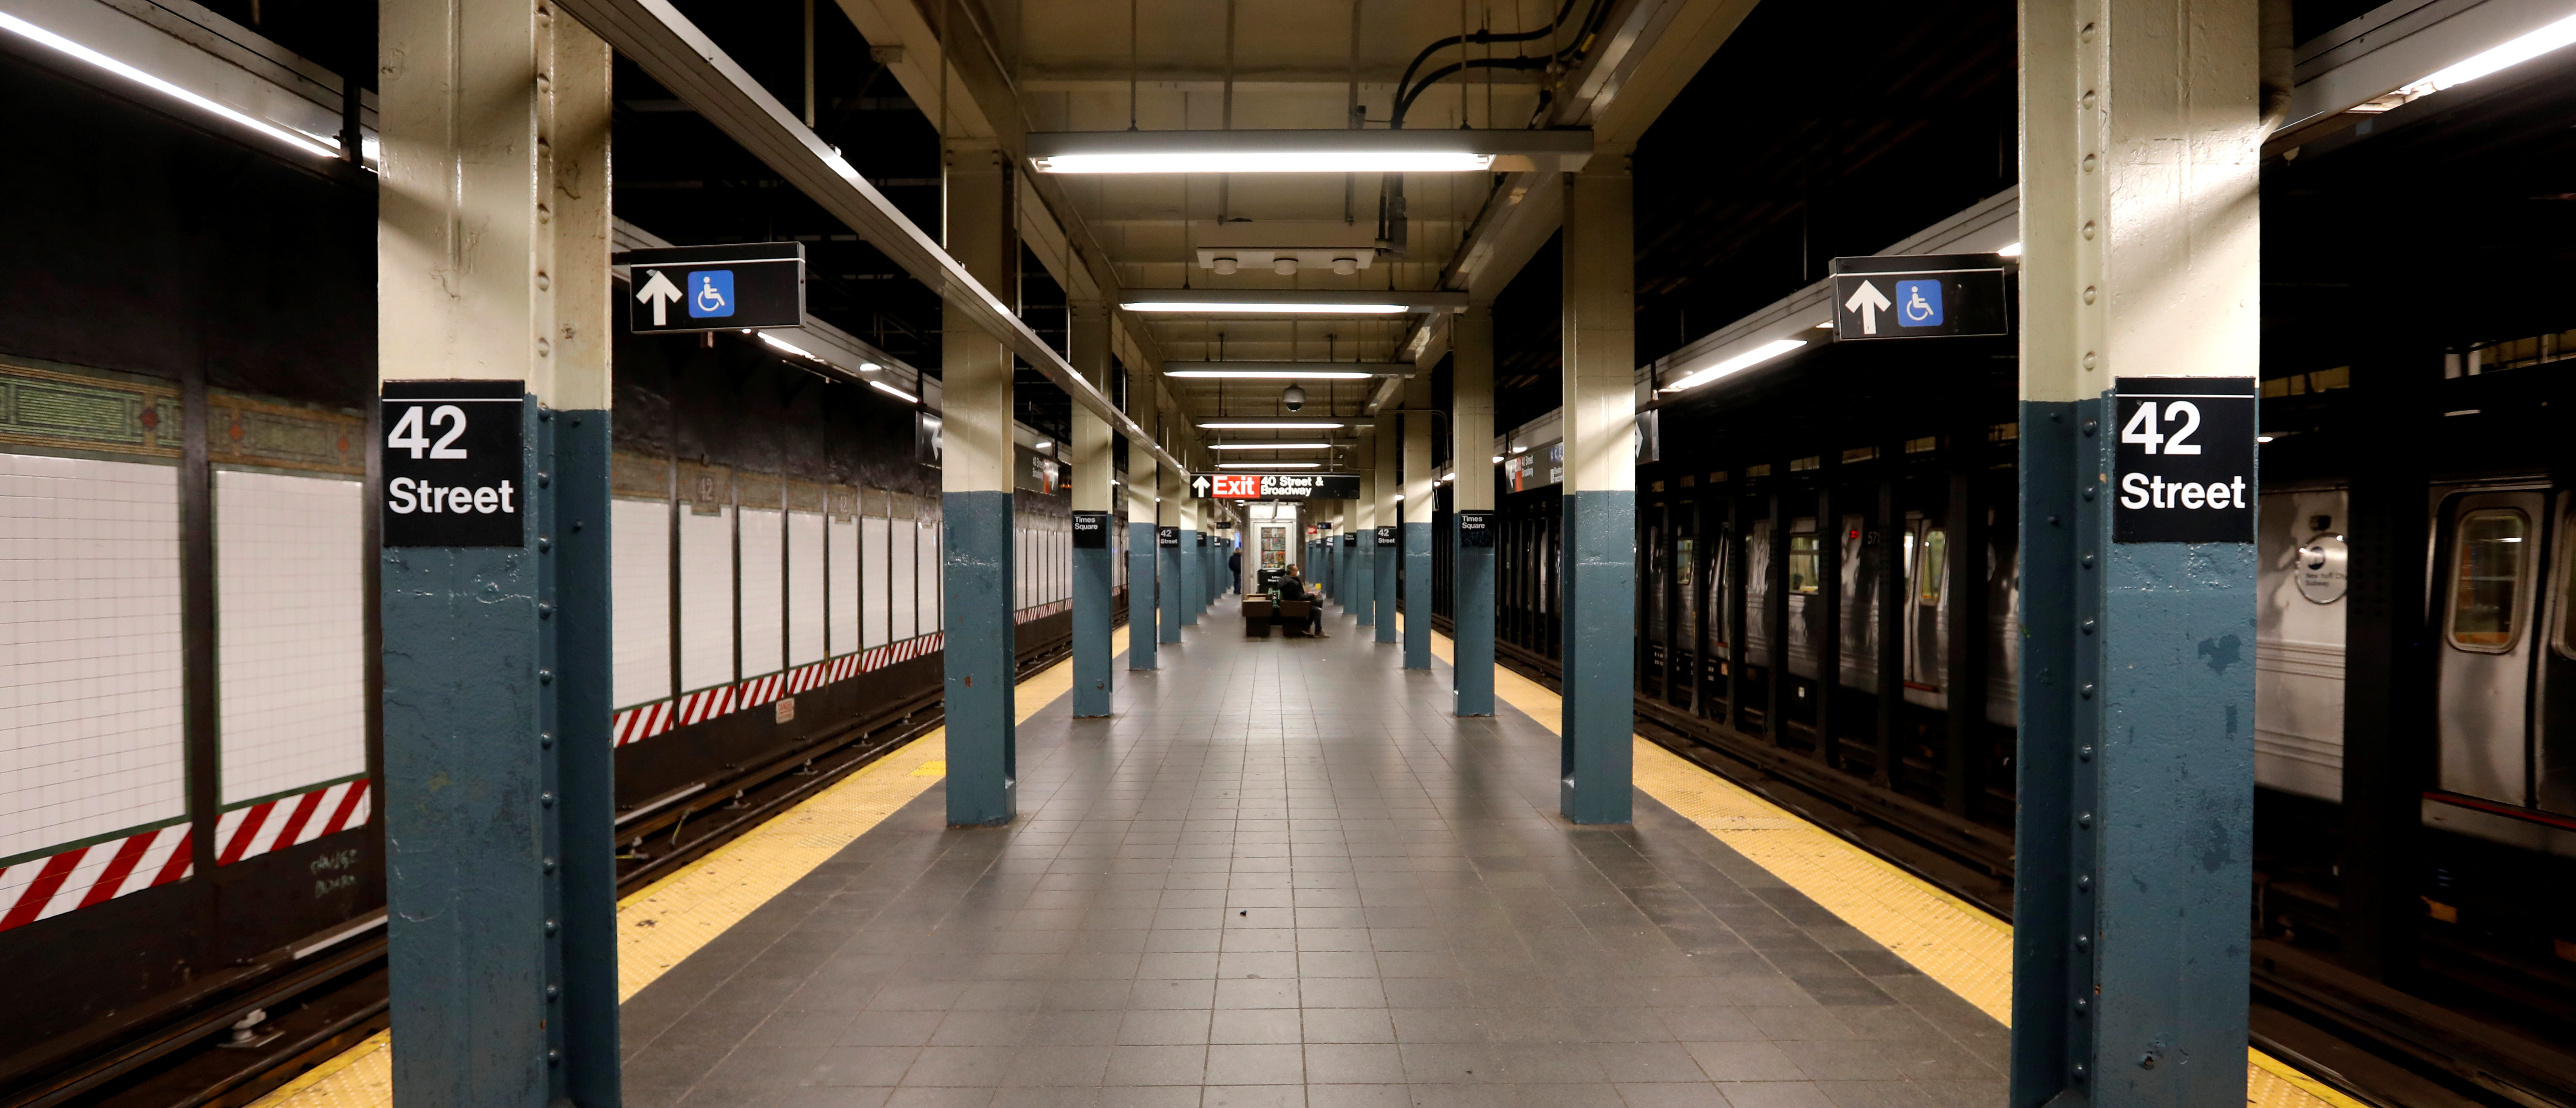 A nearly empty subway platform is seen at the 42nd Street subway station during the coronavirus outbreak in New York City, New York, U.S., March 20, 2020. REUTERS/Mike Segar